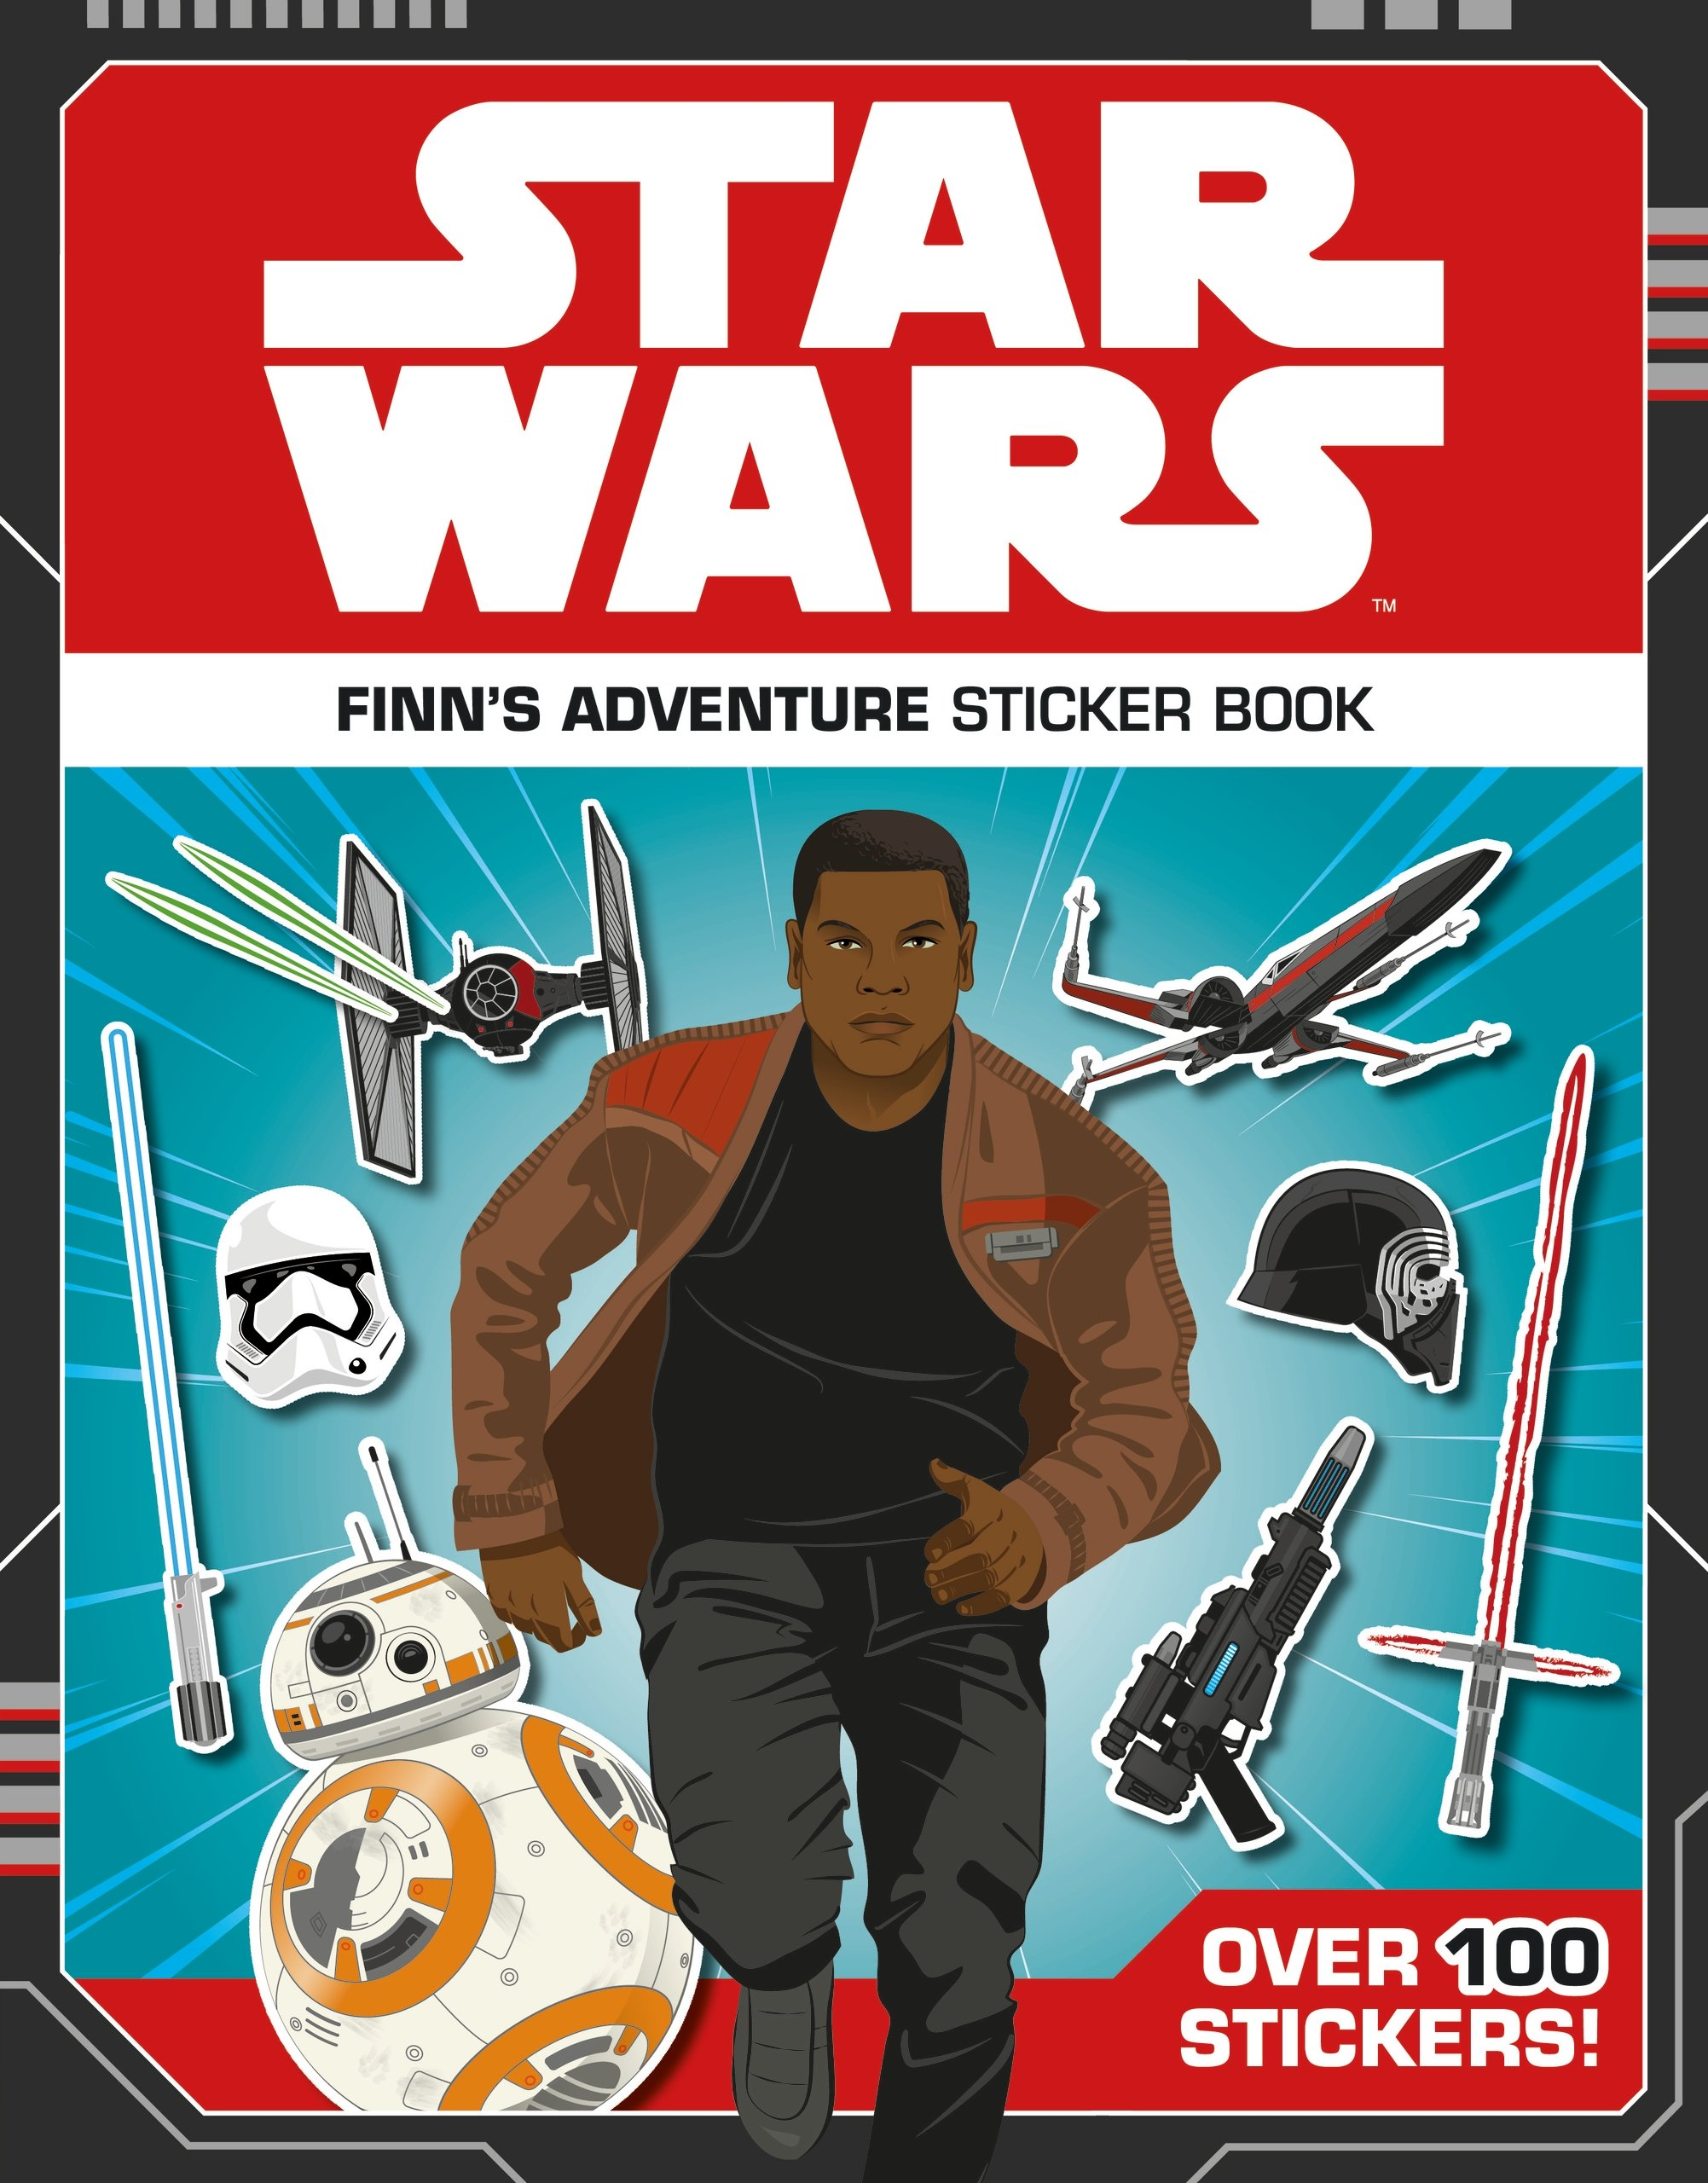 Star Wars: Finn's Adventure Sticker Book